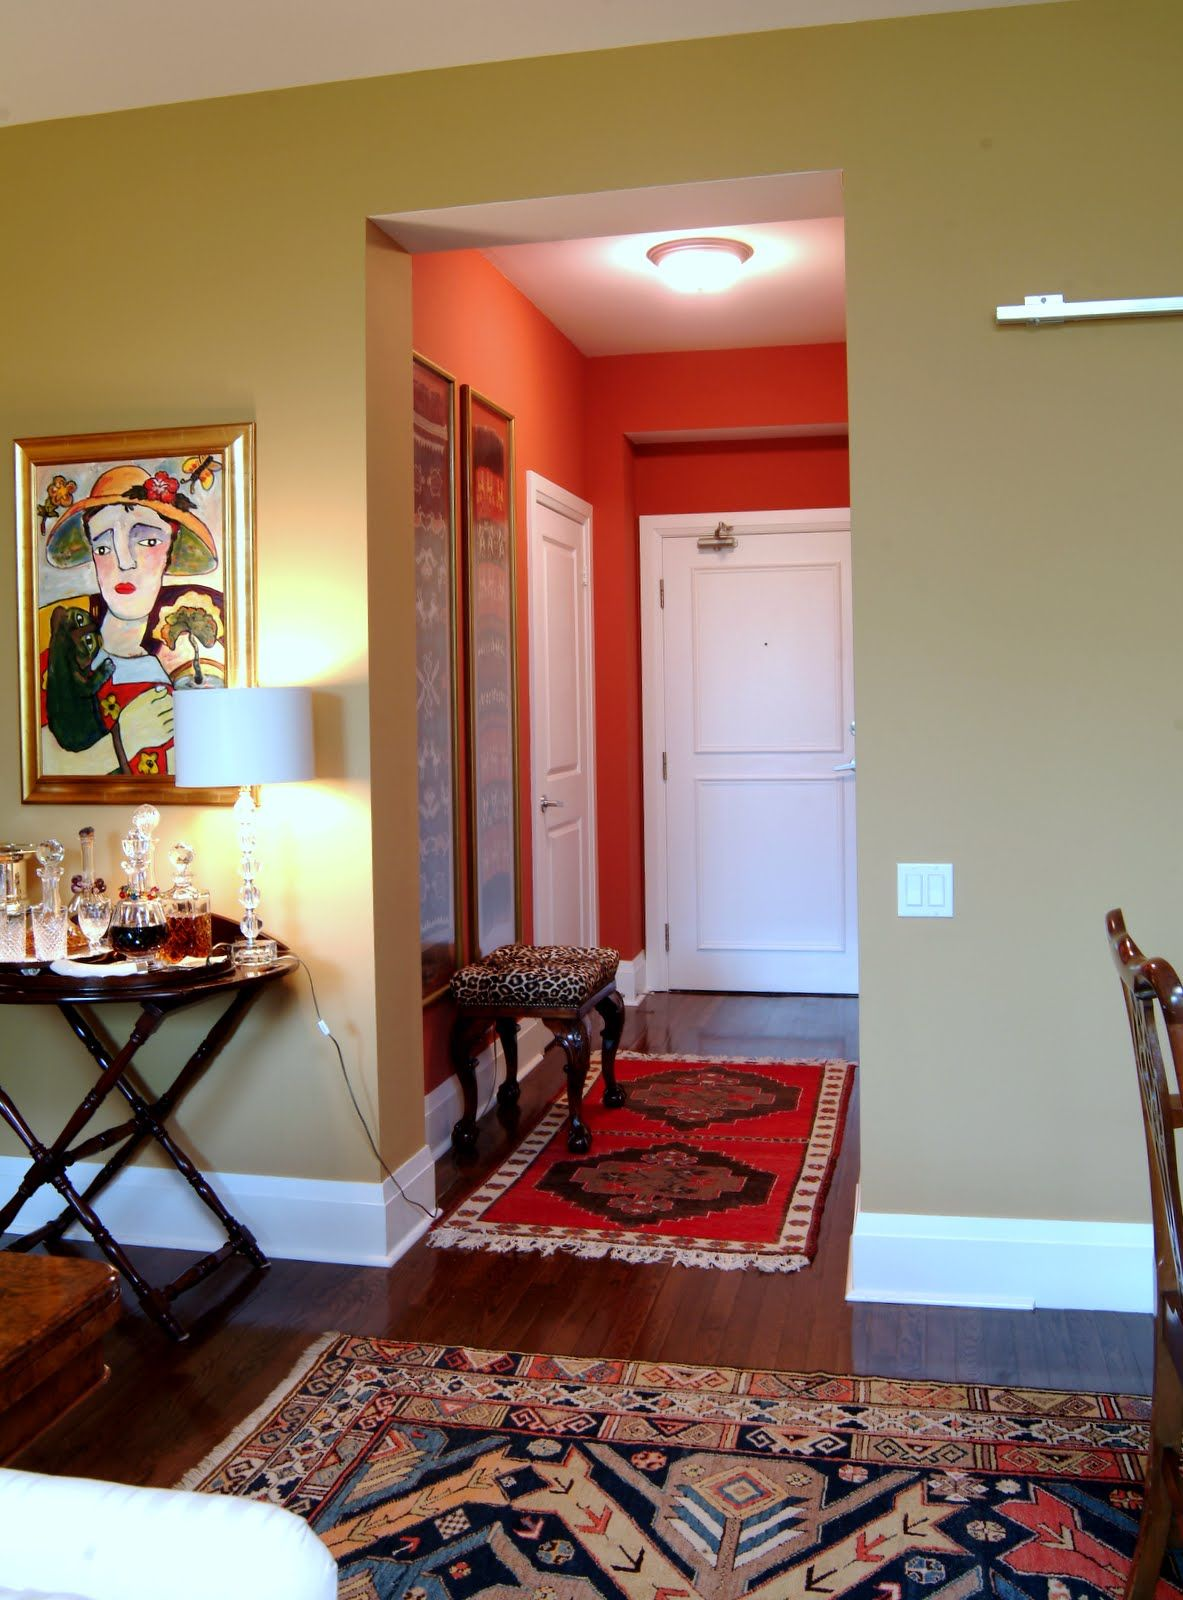 This client had impeccable taste and wonderful art and